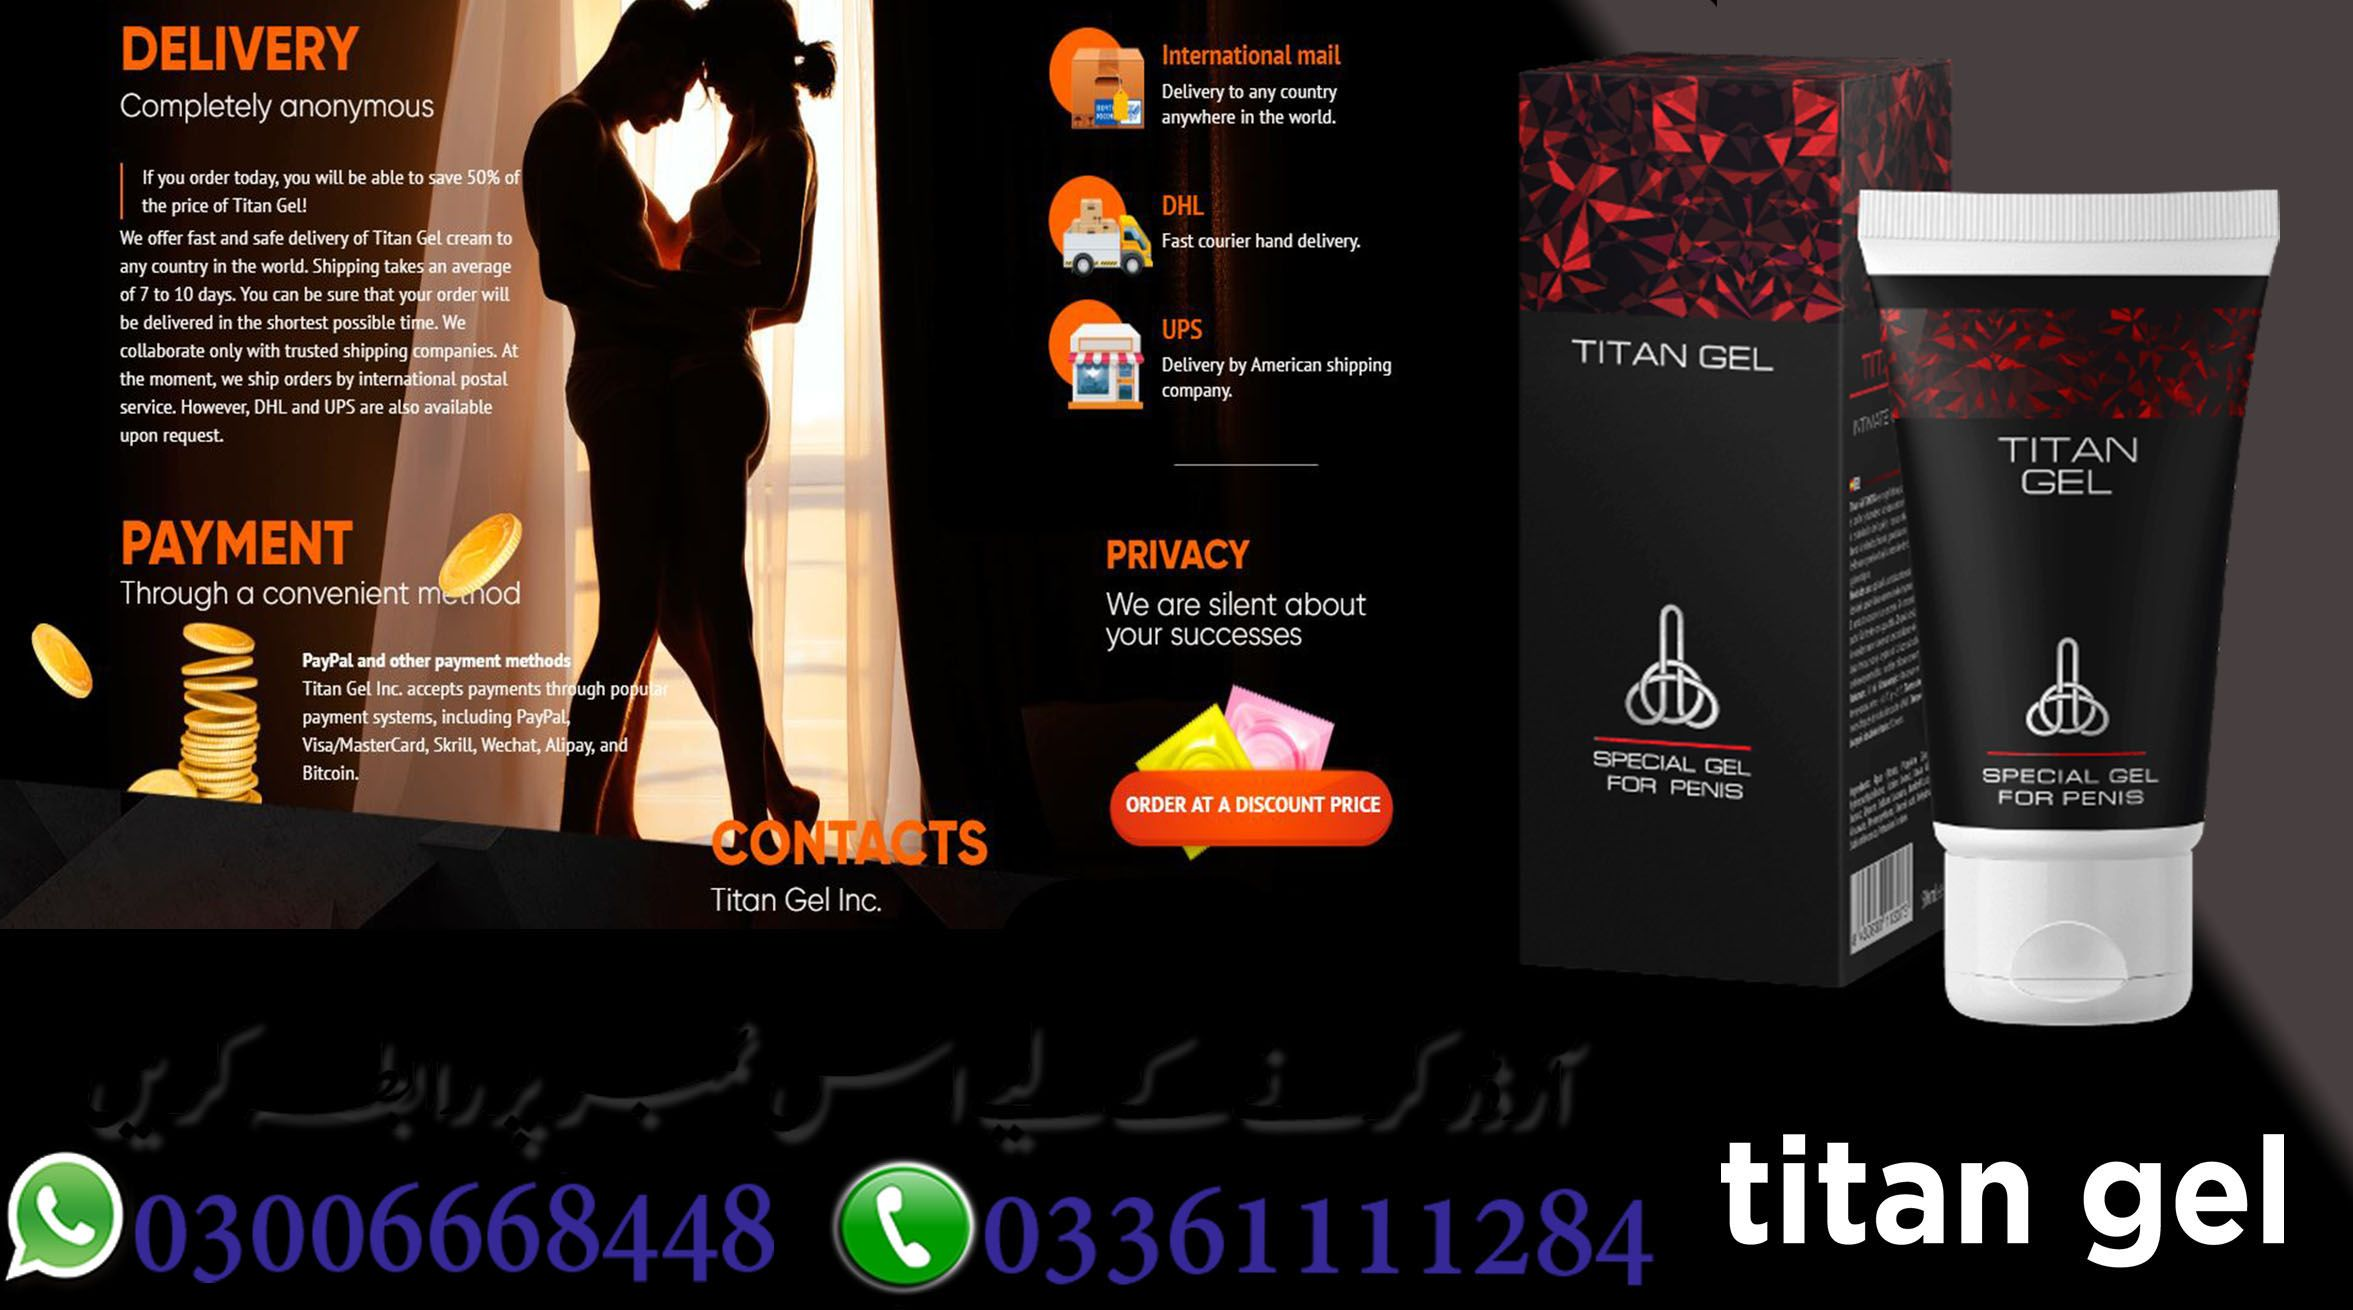 Titan Gel Price In Pakistan All People All Over The World Want To